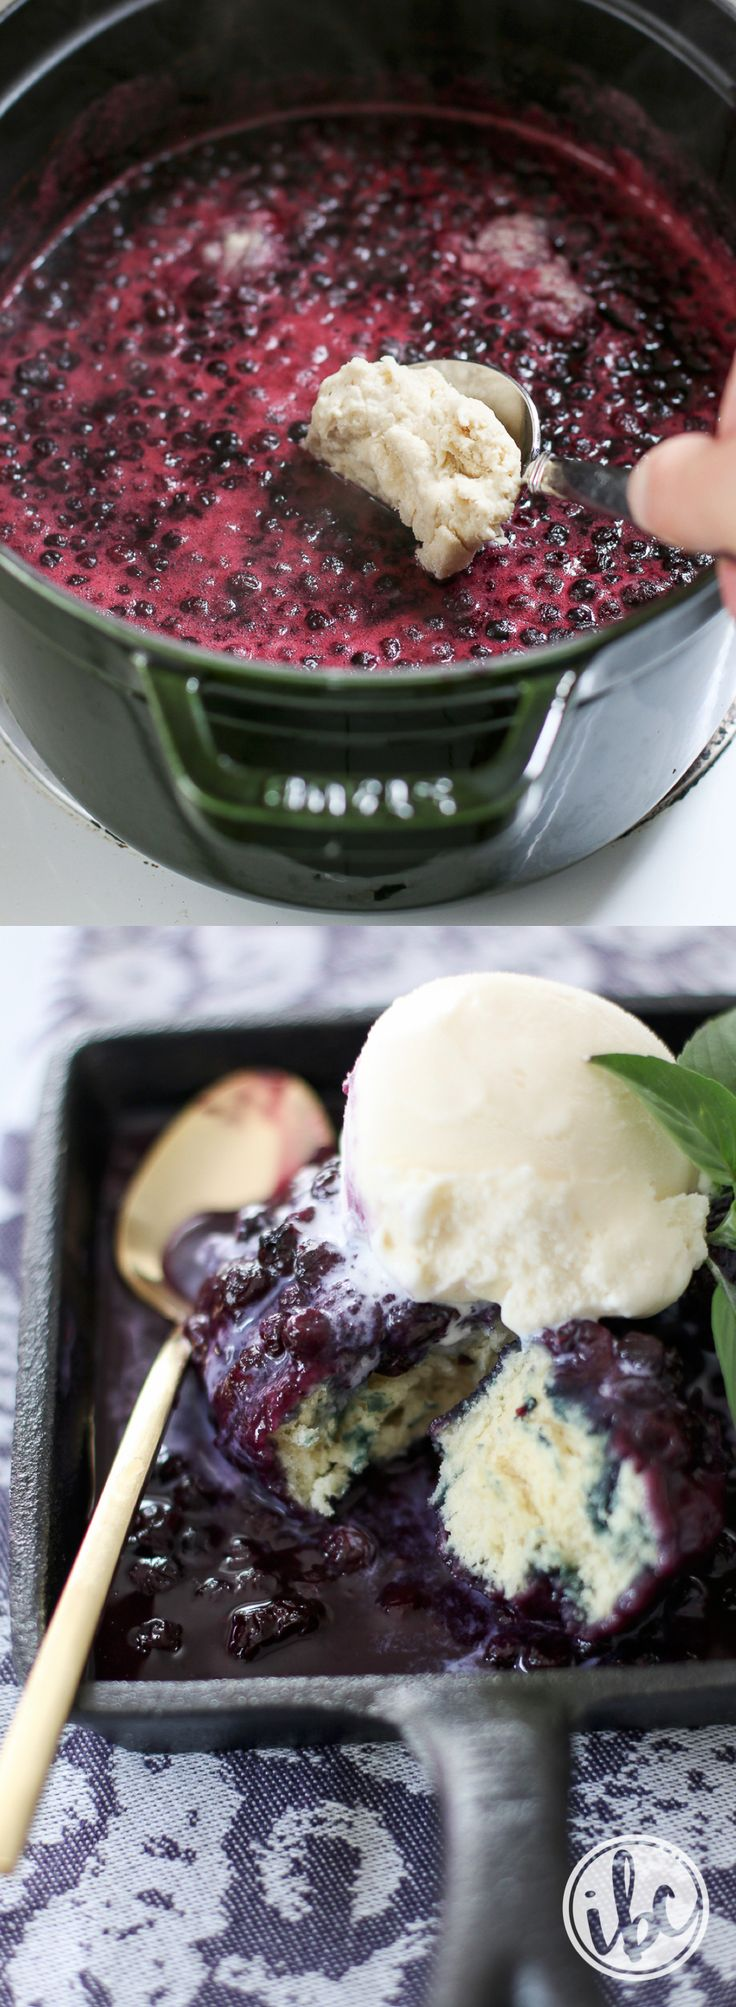 Wild Blueberry Grunt recipe - Similar to a cobbler, but wonderfully different. Sweet dumplings are steamed in wild blueberries for a truly unique and flavorful dessert! Top with ice cream for the perfect summer treat.